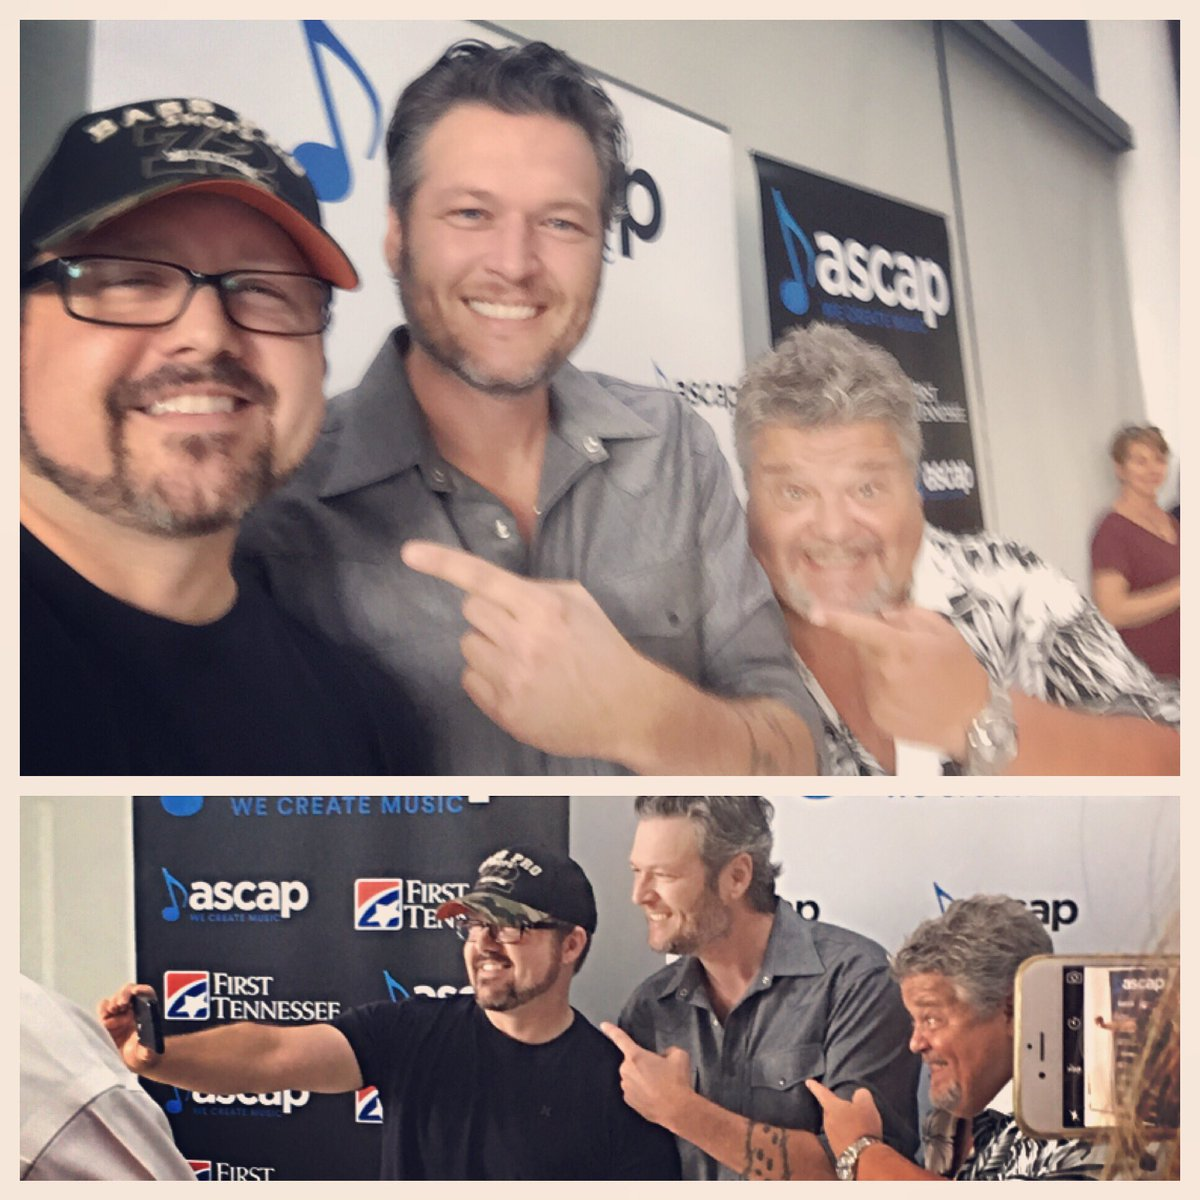 Lot of finger pointing going on at our # 1 party for #CameHereToForget today. Thnx @blakeshelton , Craig & @ASCAP ! https://t.co/QwjrY0FZ8e